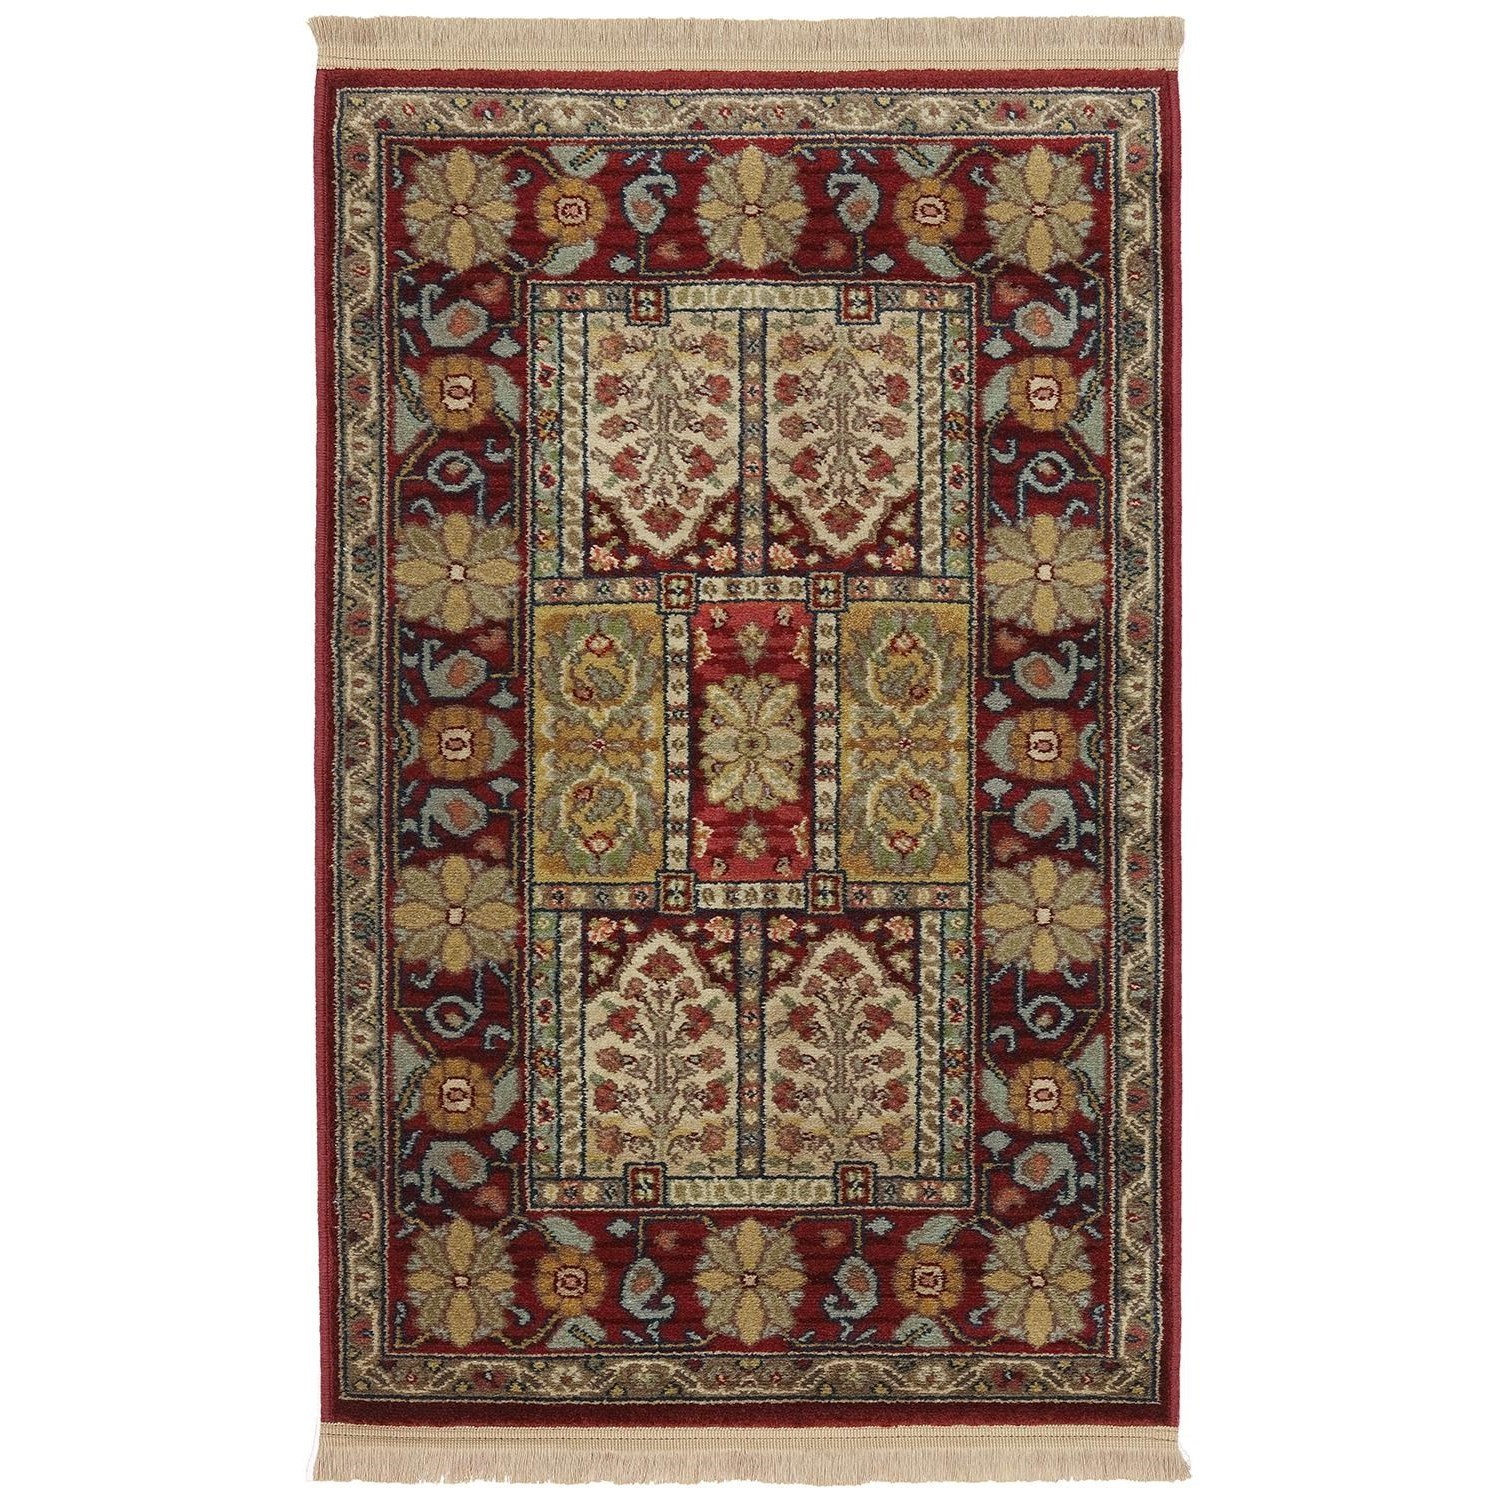 Karastan Rugs Antique Legends 4'3x6' Bakhtiyari Rug - Item Number: 02200 00202 051072